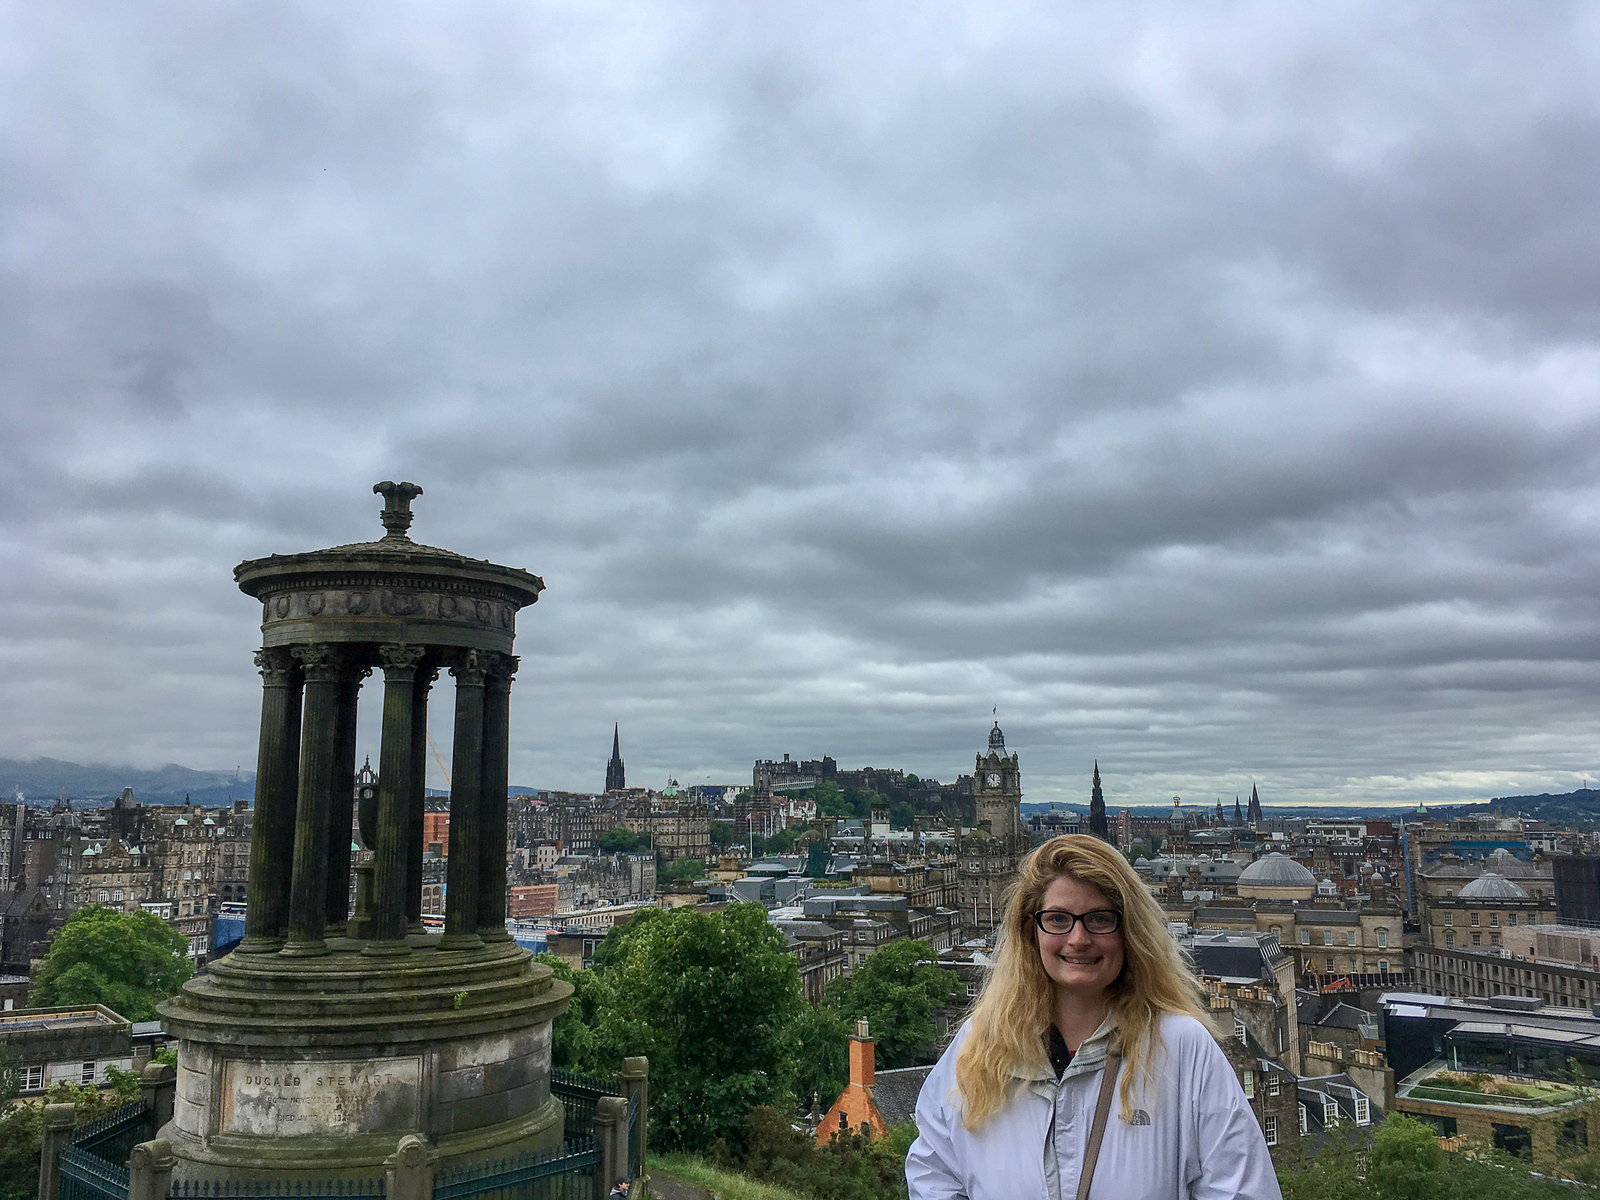 an edinburgh weekend trip promises many great sights